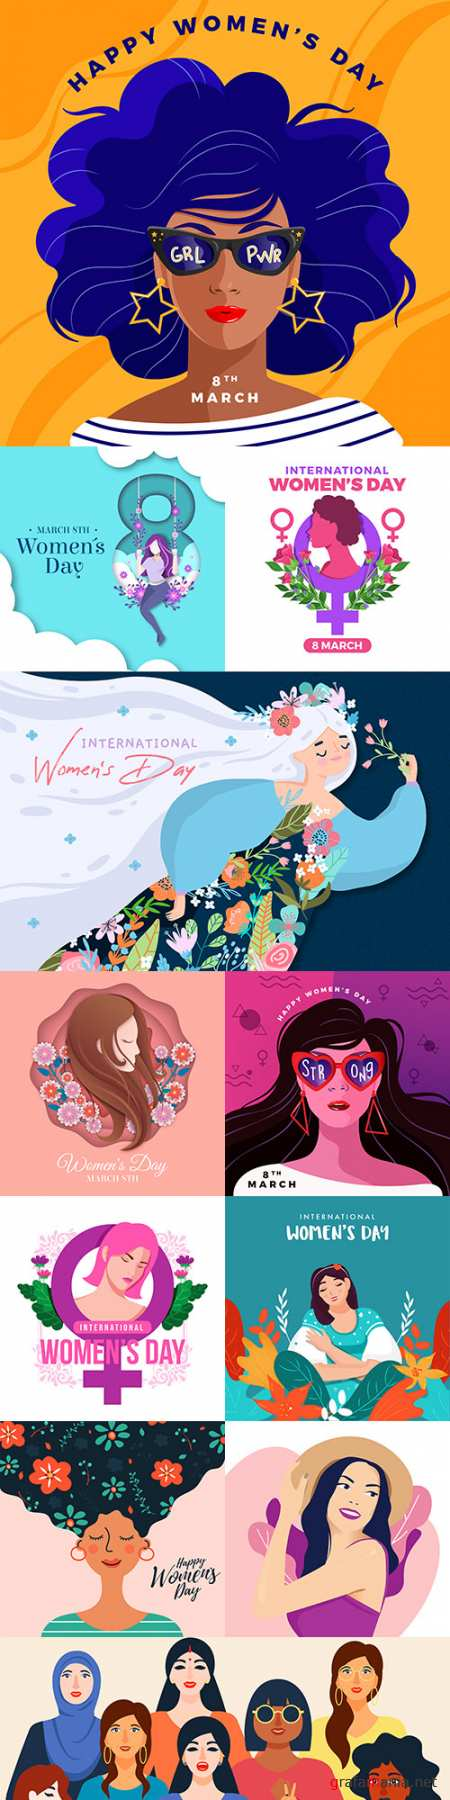 March 8 and Women's Day illustration flat design 10